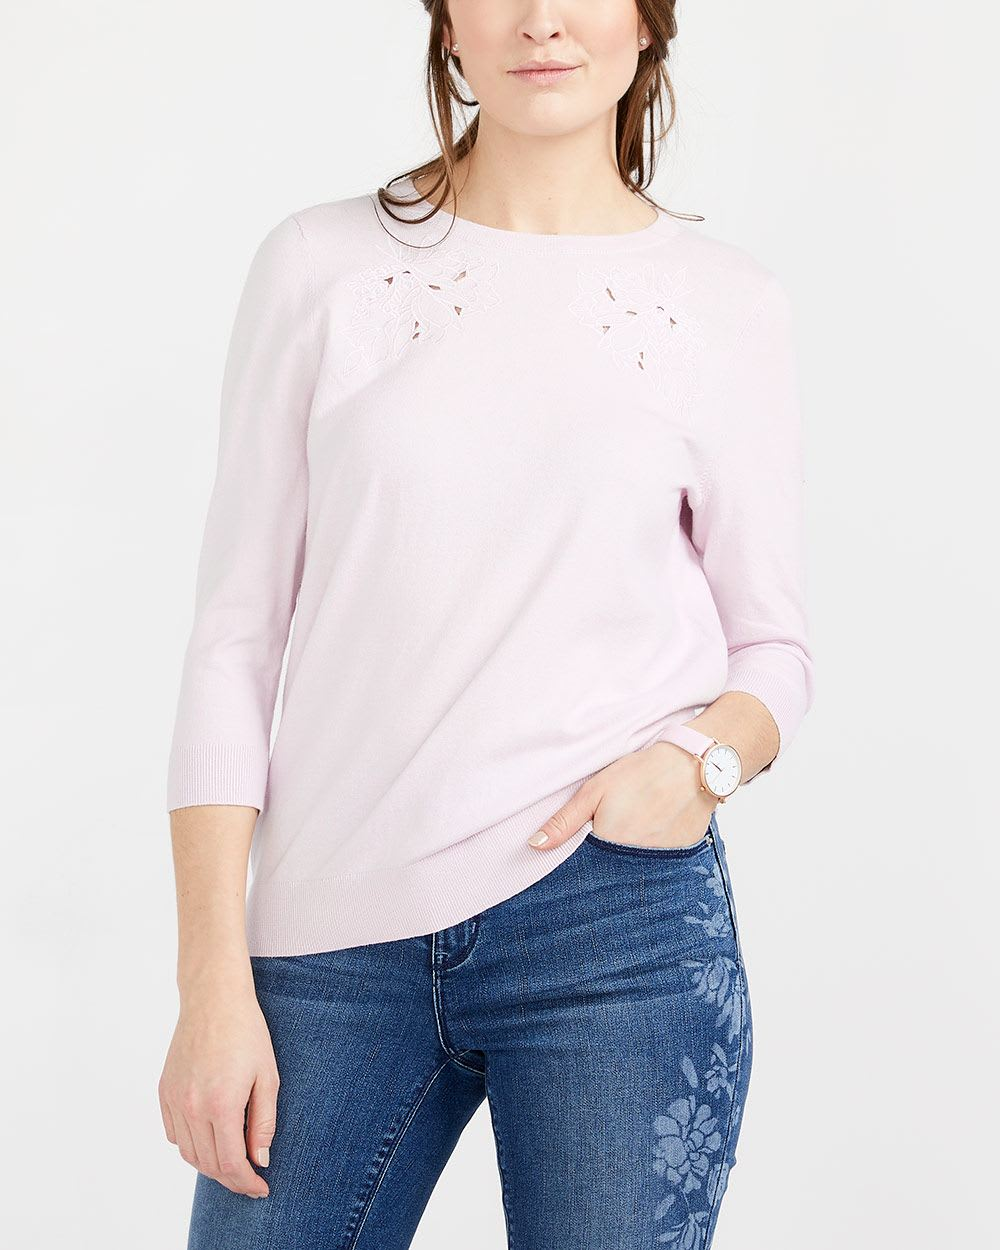 ¾ Sleeve Embroidered Sweater